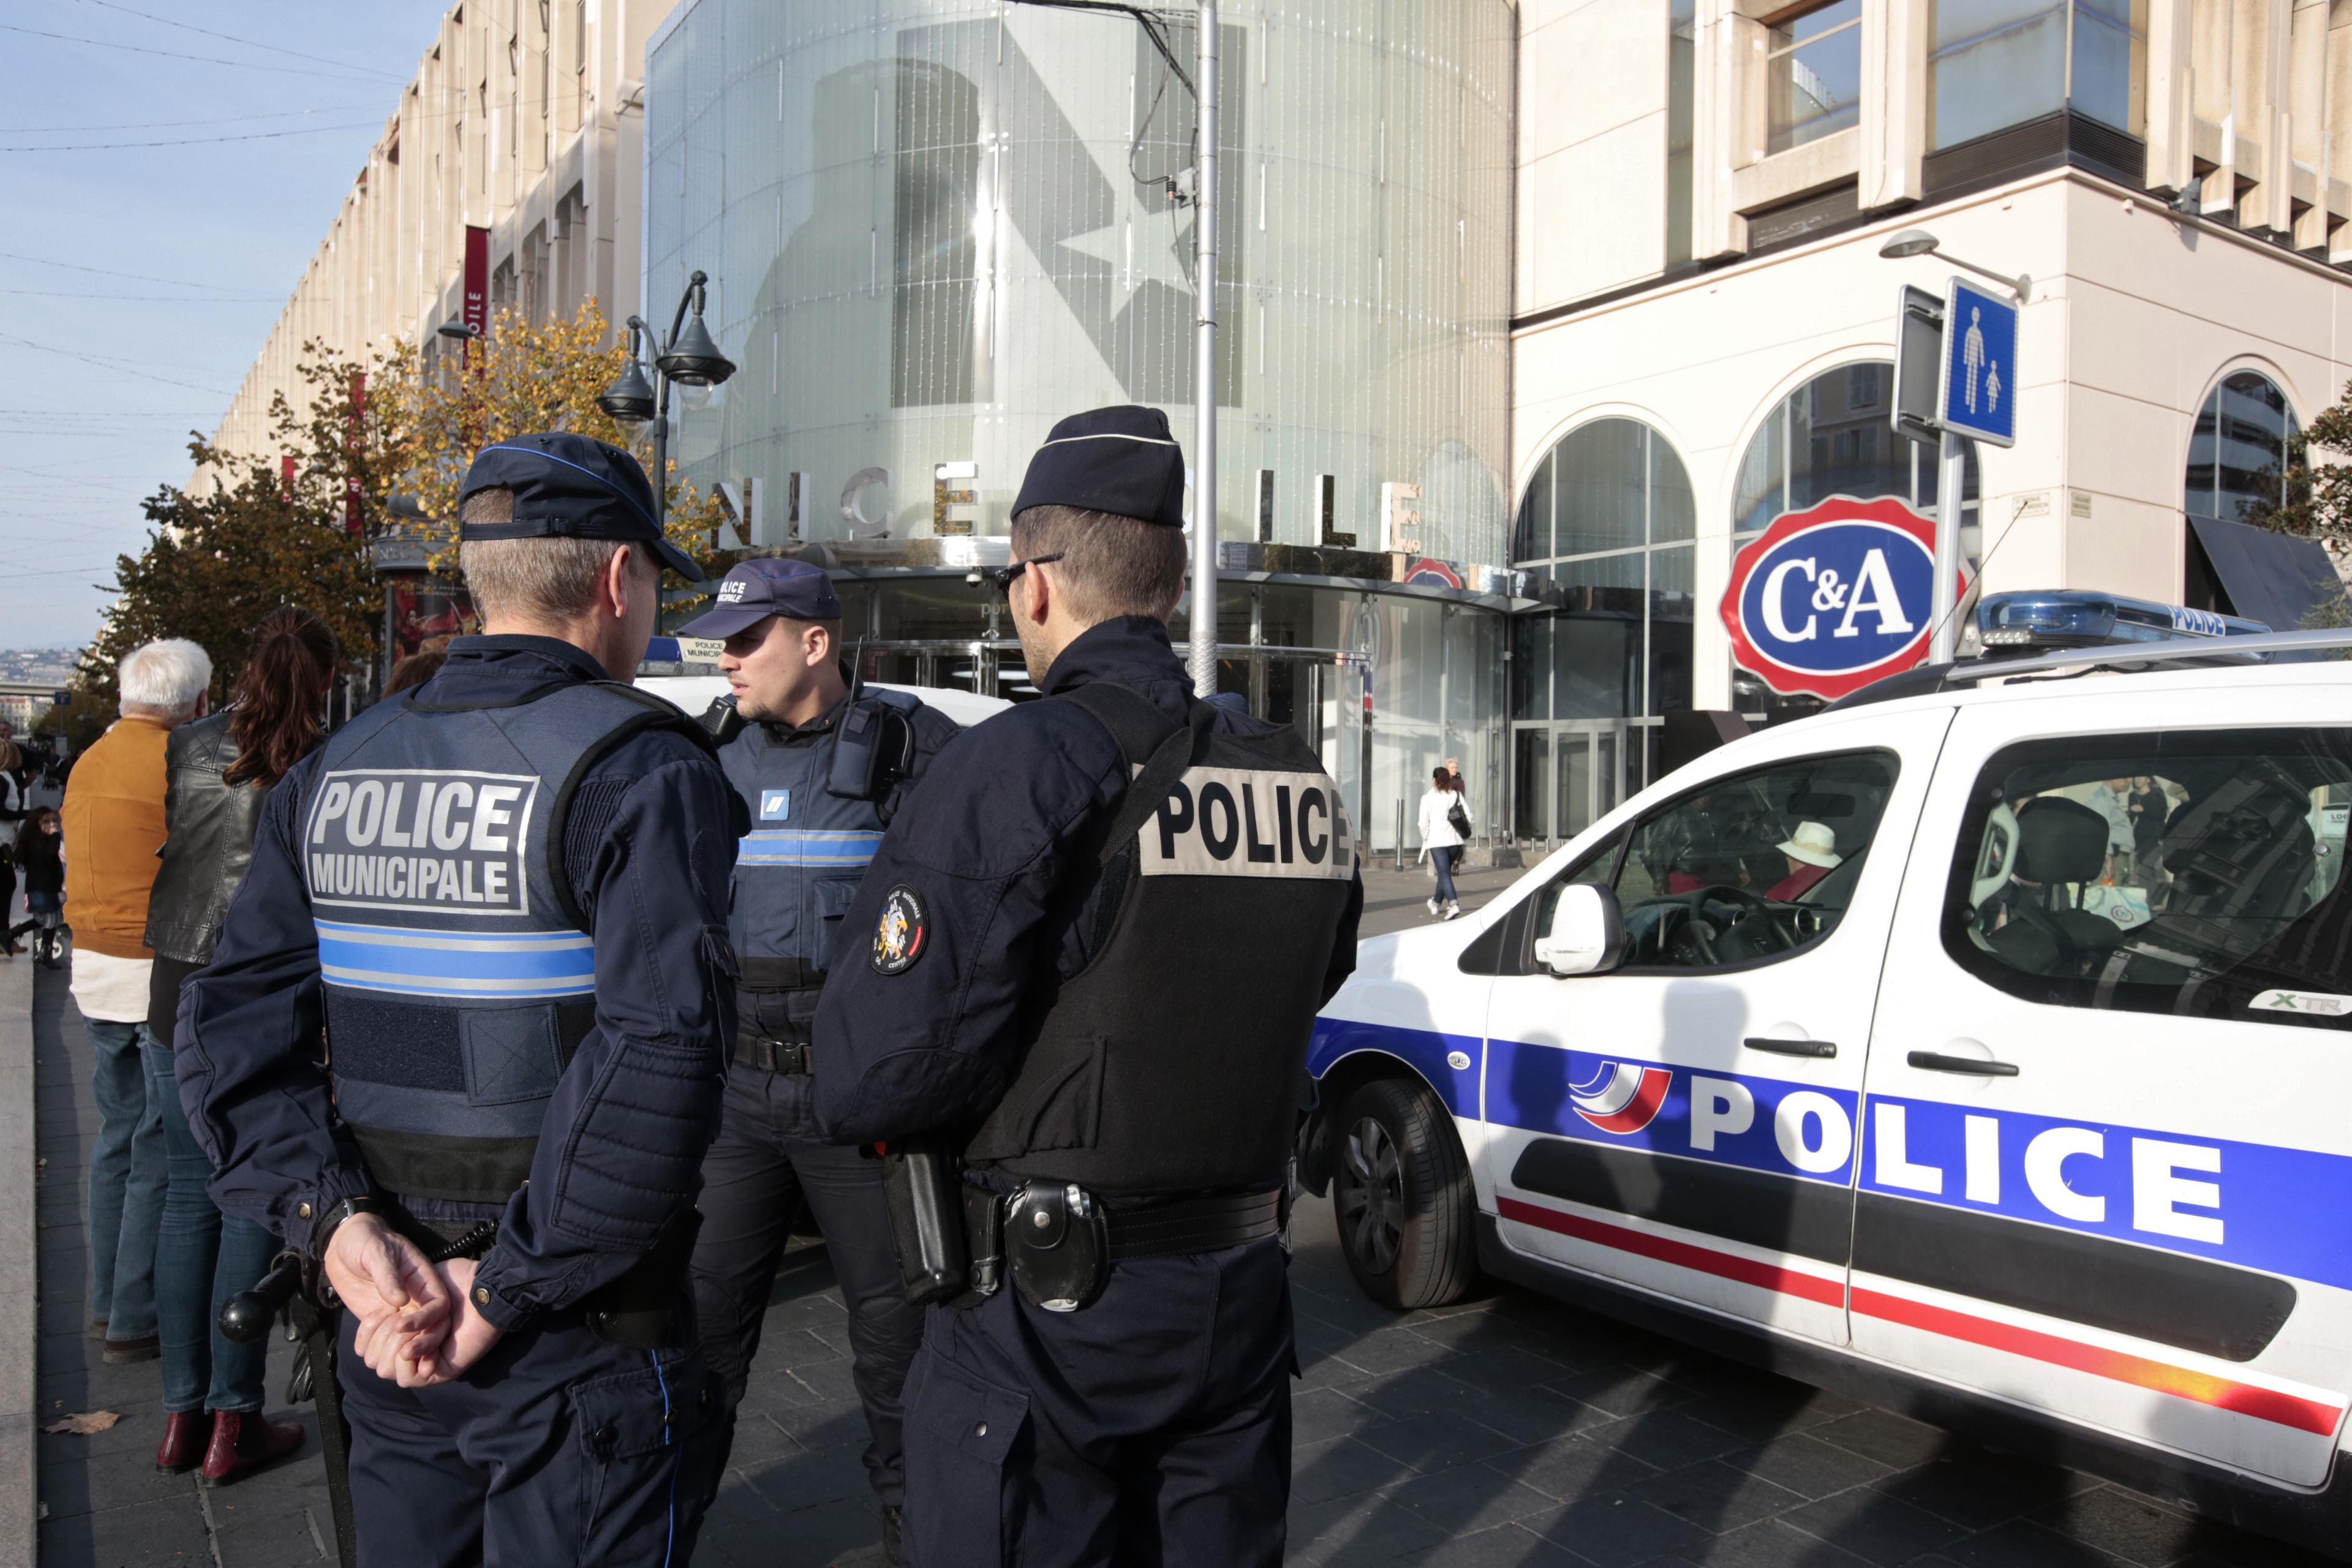 French police at a location in central Paris.